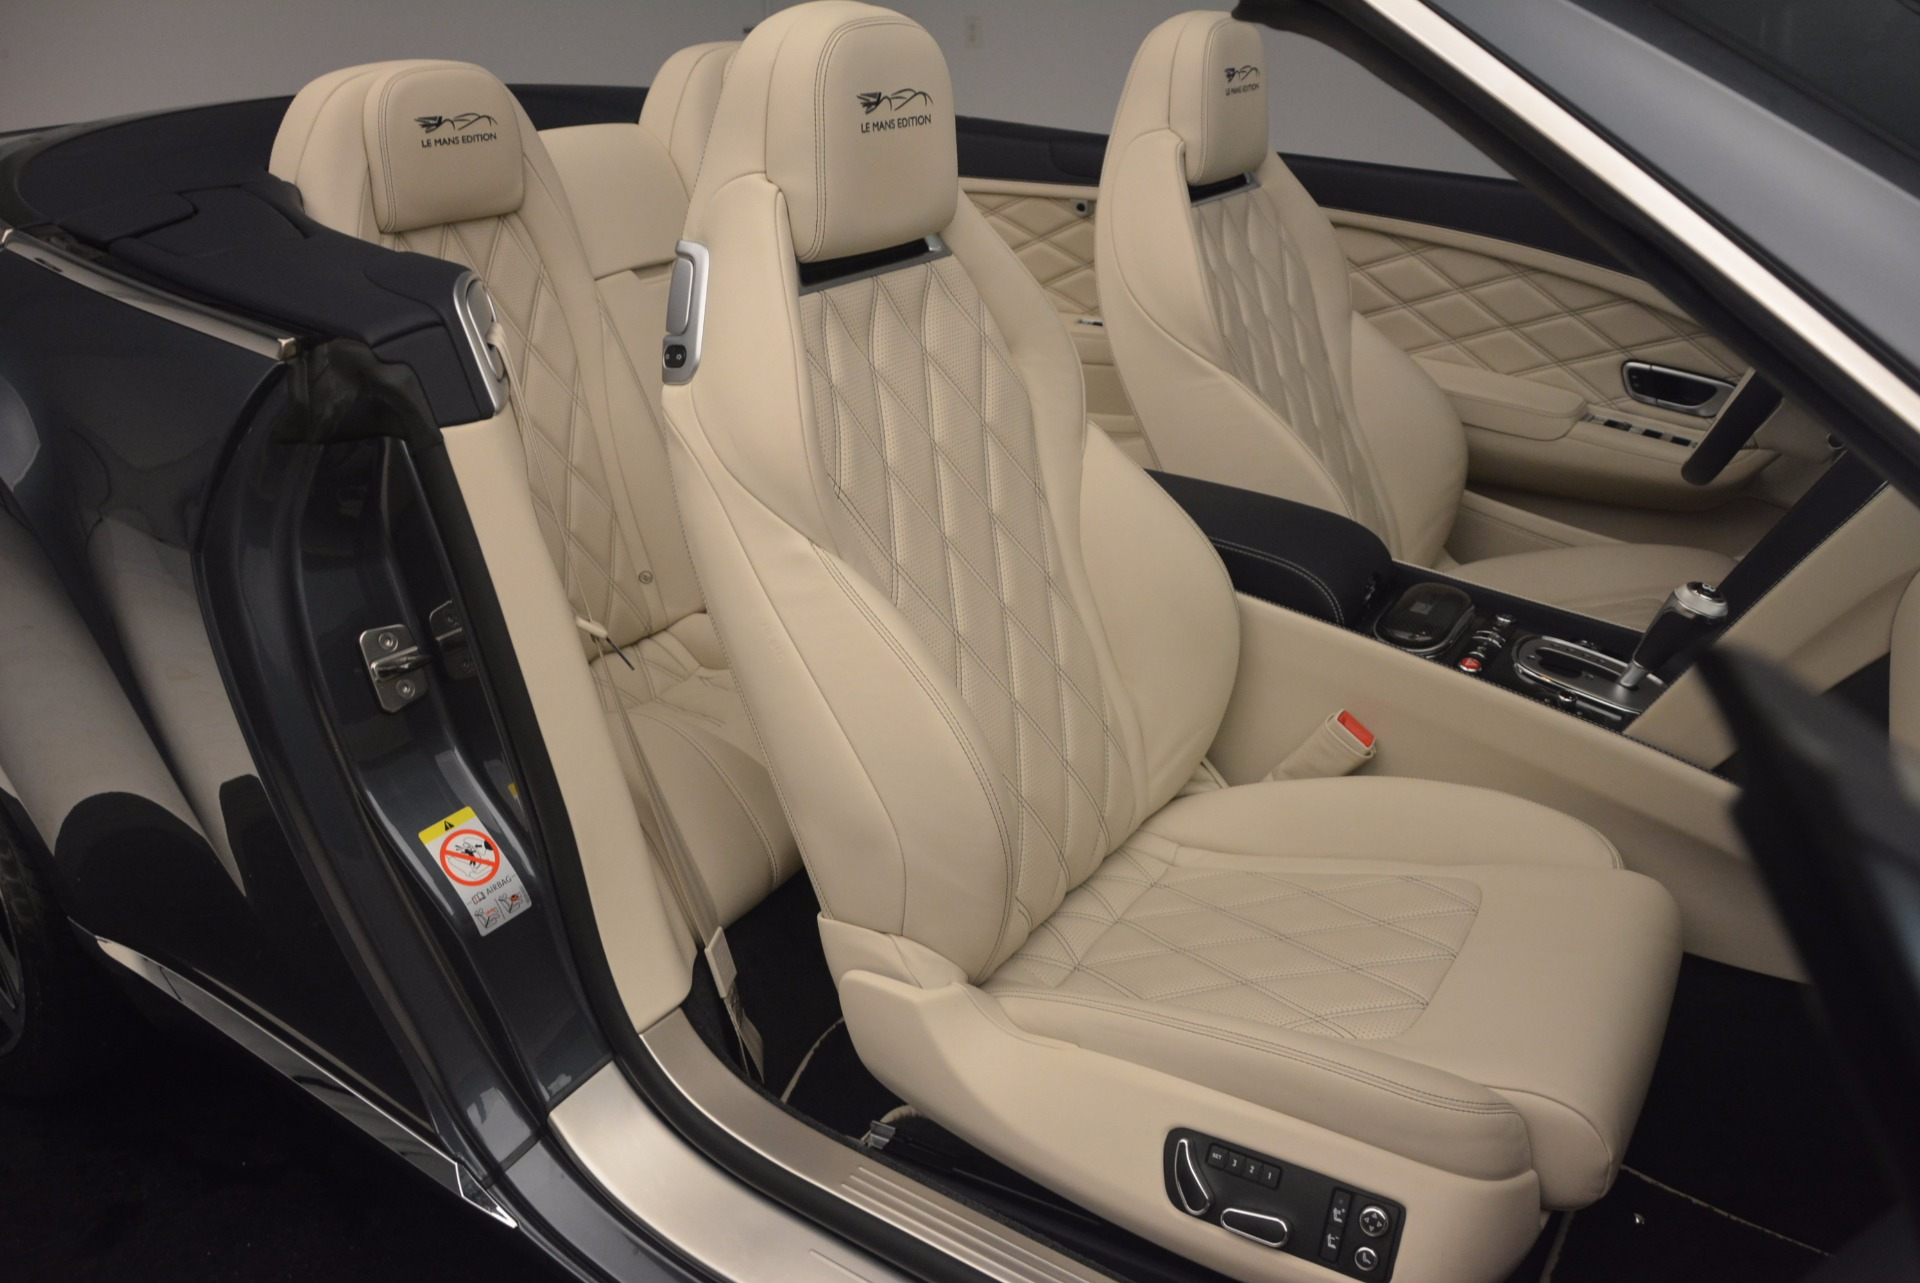 Used 2013 Bentley Continental GT V8 Le Mans Edition, 1 of 48 For Sale In Westport, CT 1288_p50